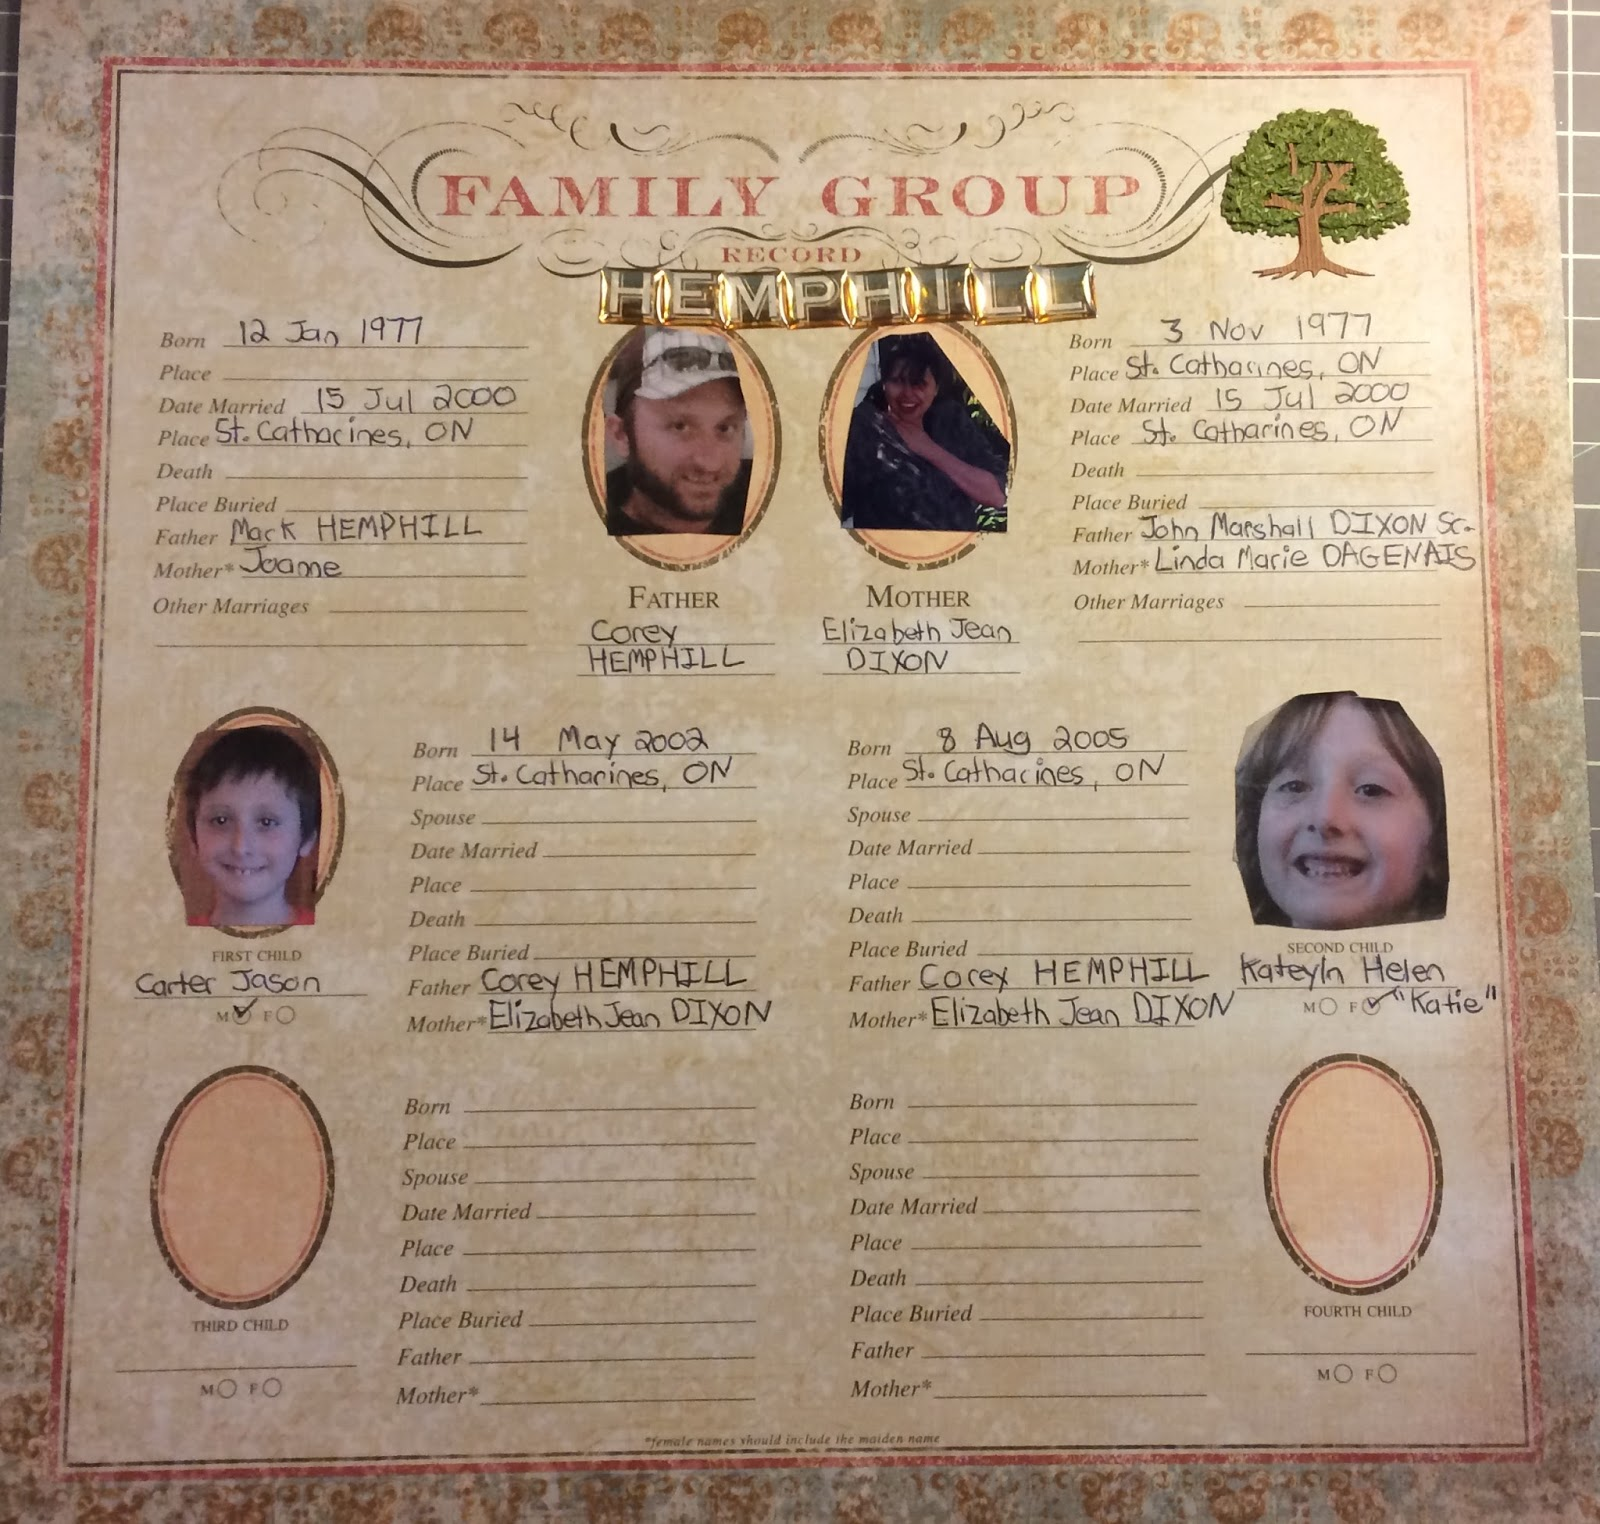 How to scrapbook family tree - Family Group Record 2